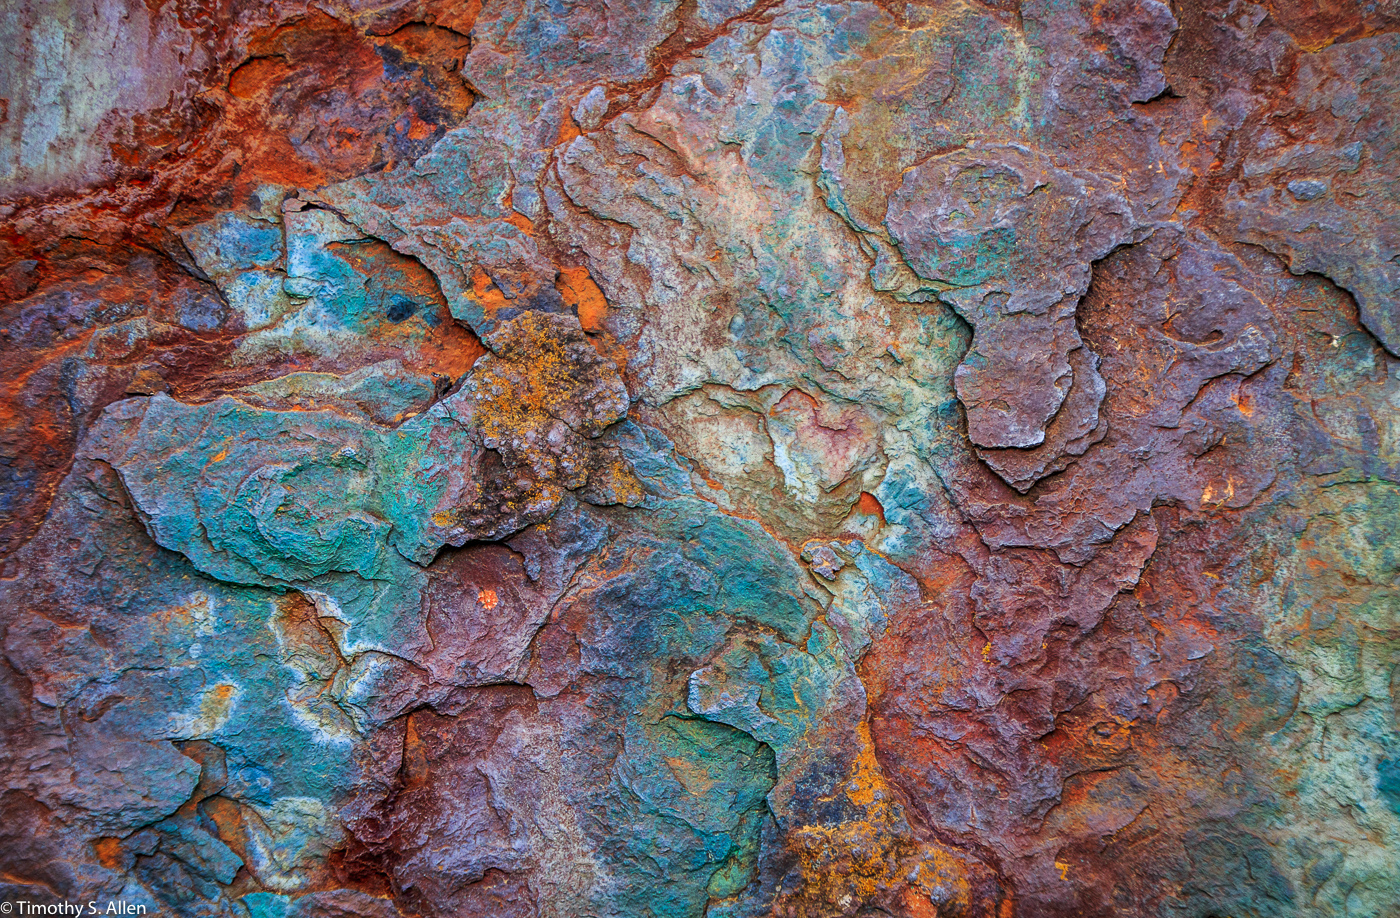 Part of a Metal Cover at a Fortification - Golden Gate National Recreation Area, Marin Headlands, California, U.S.A. June 3, 2017